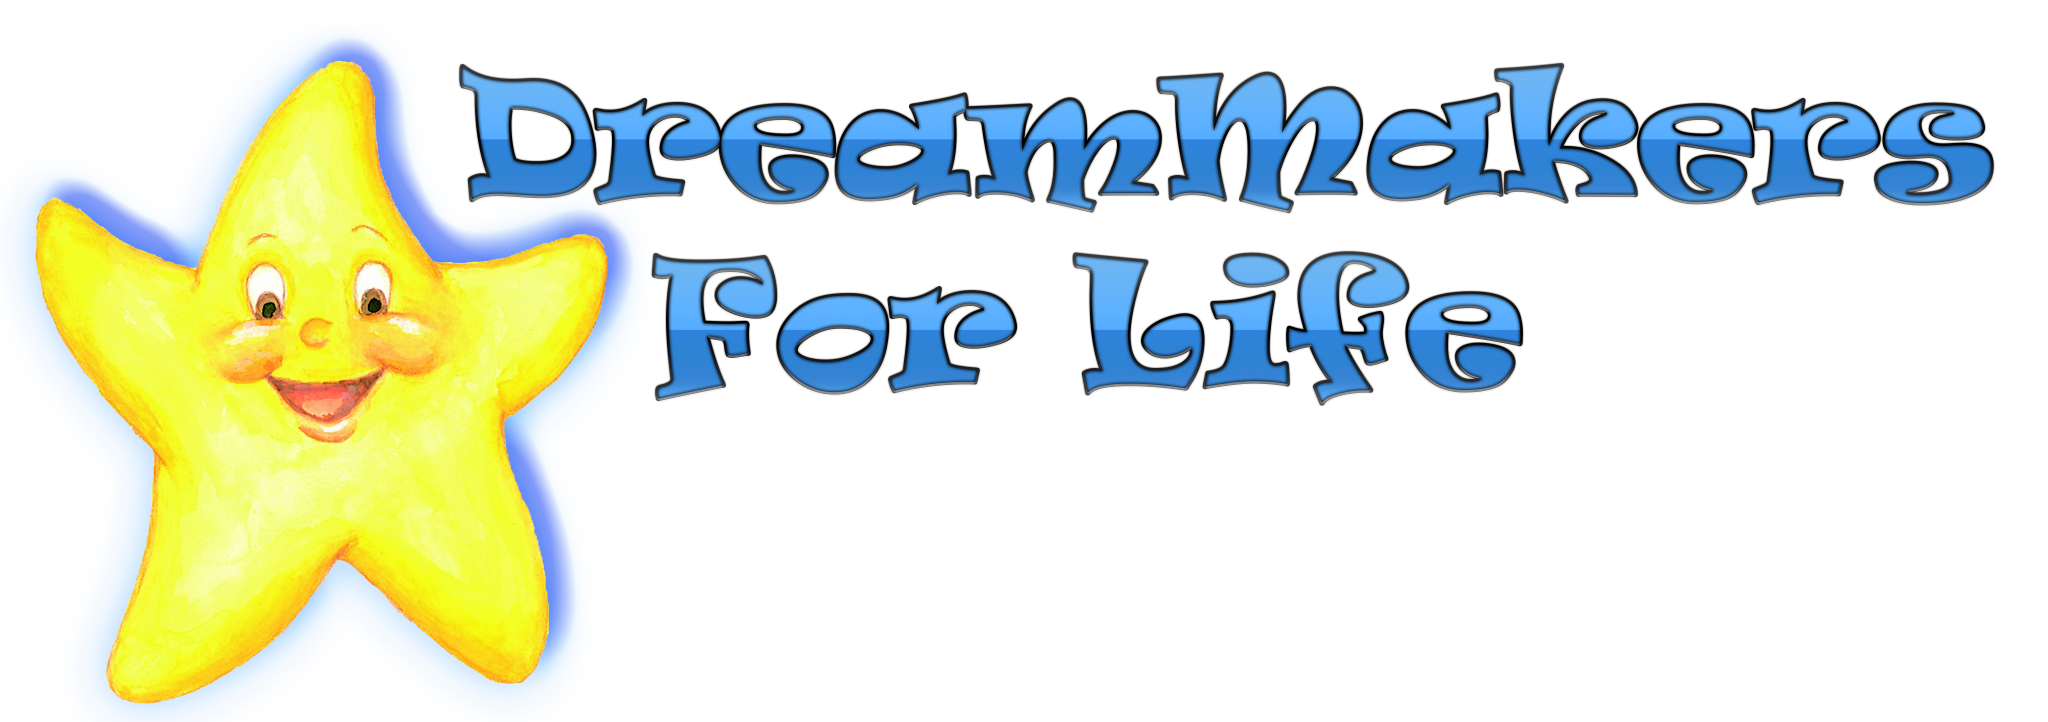 About dreammakers for our. Dreams clipart future life